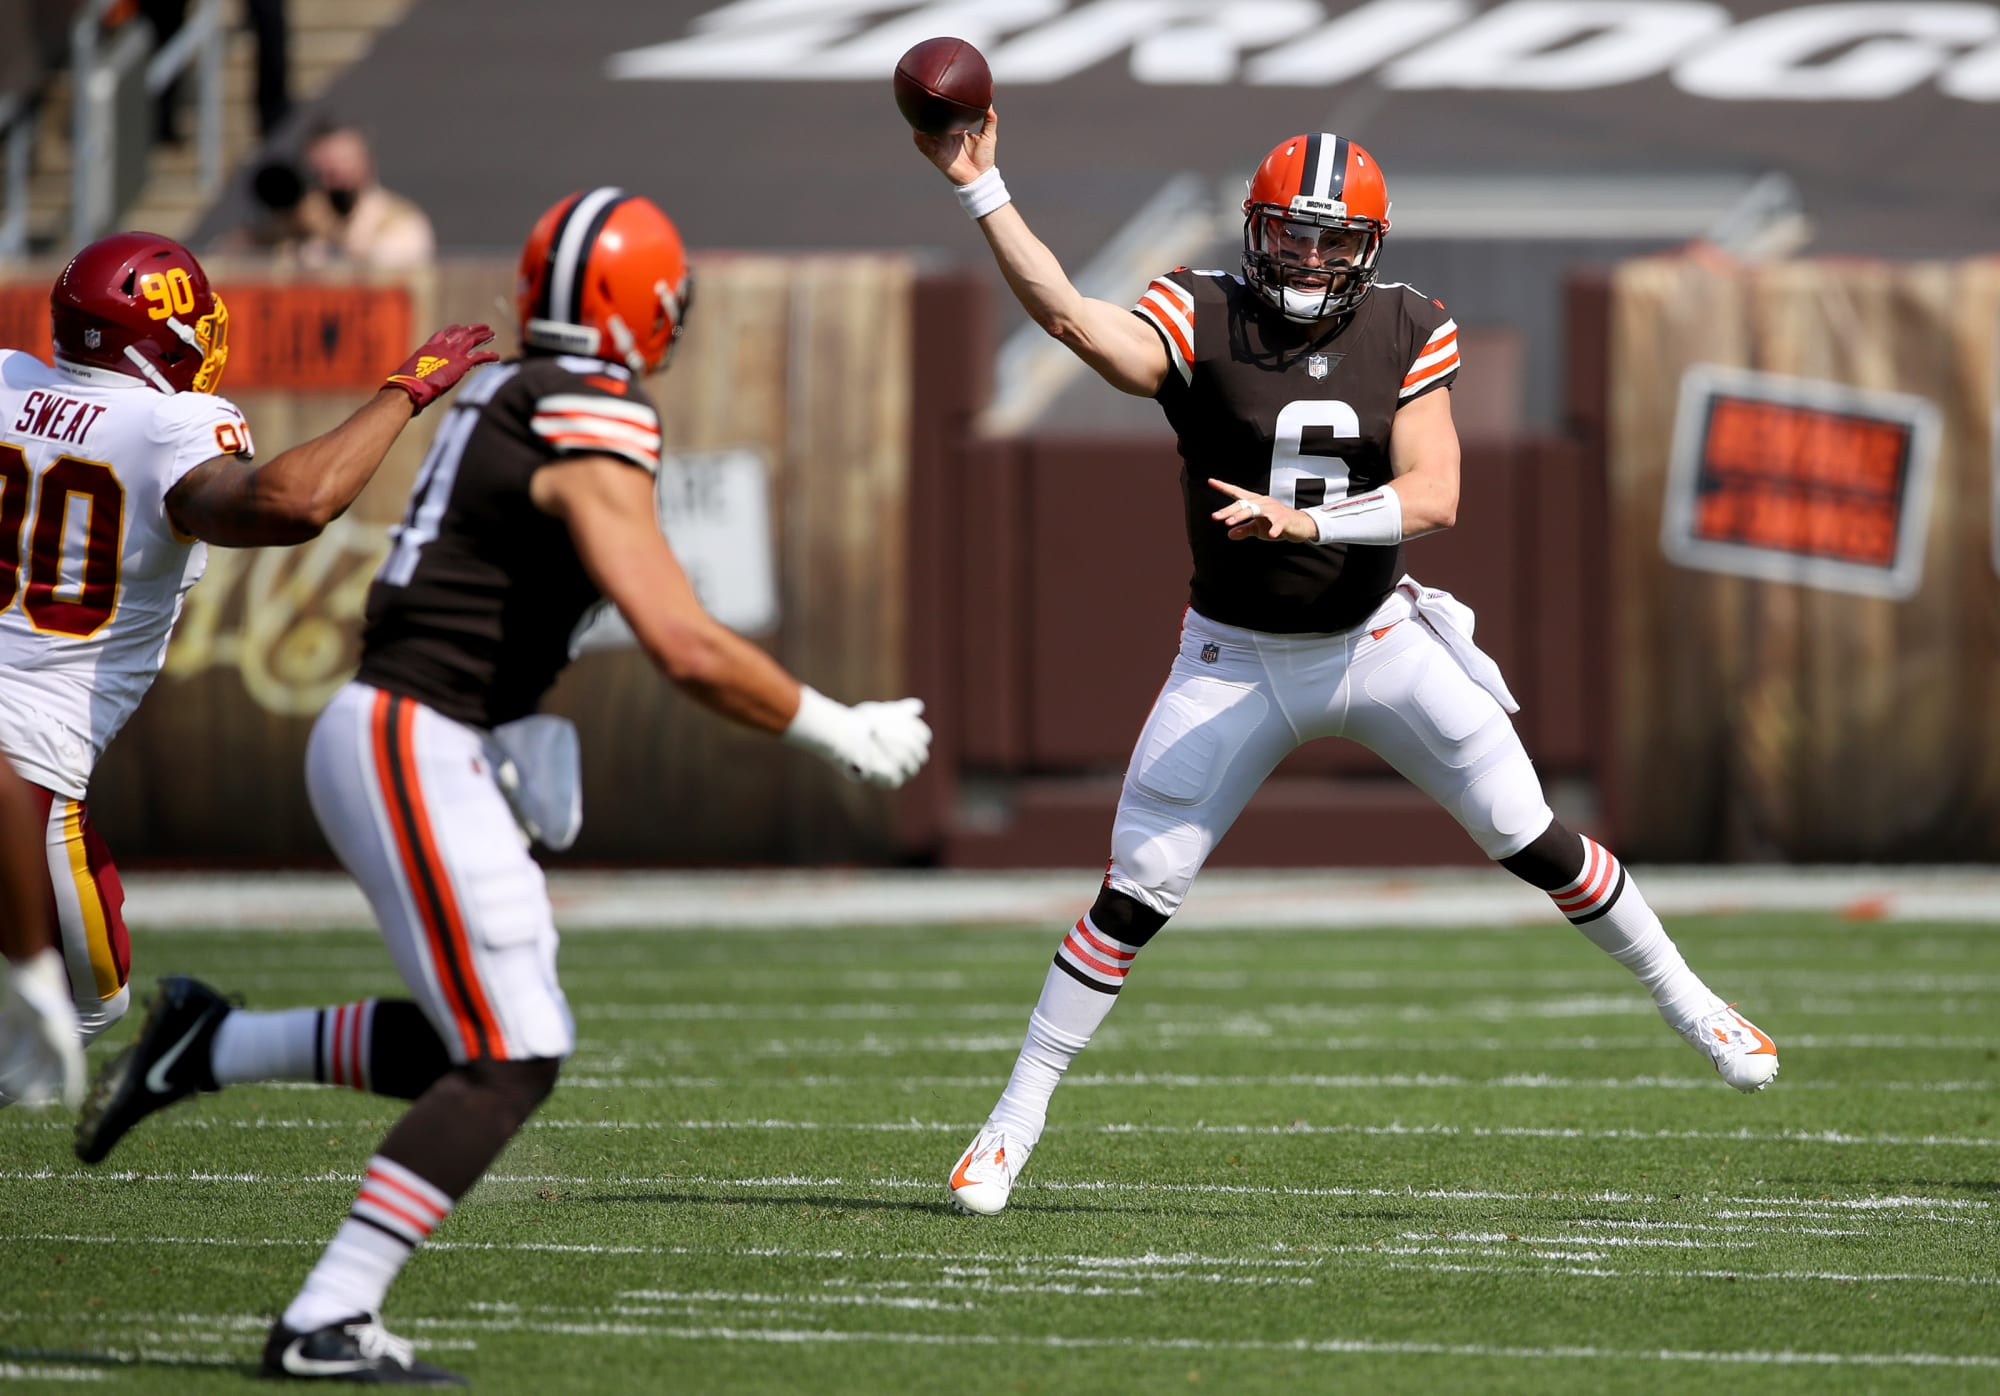 Cleveland Browns: Baker Mayfield plays nearly perfect game